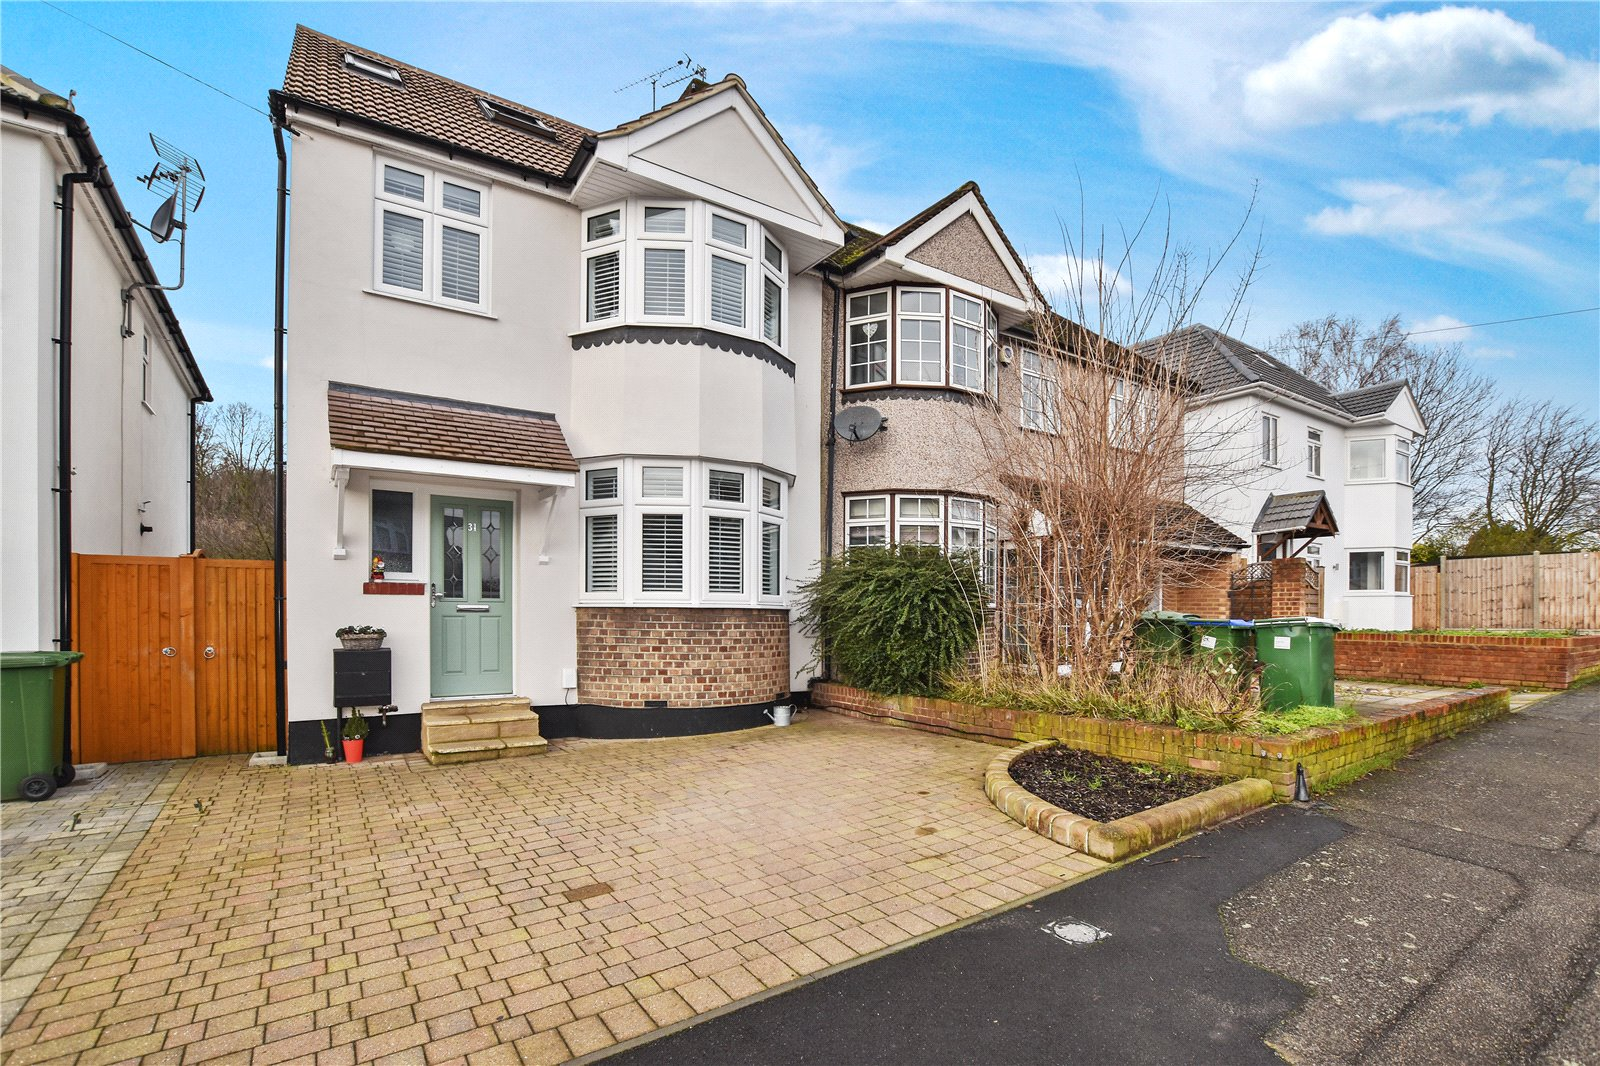 Woodside Road, Bexleyheath, DA7